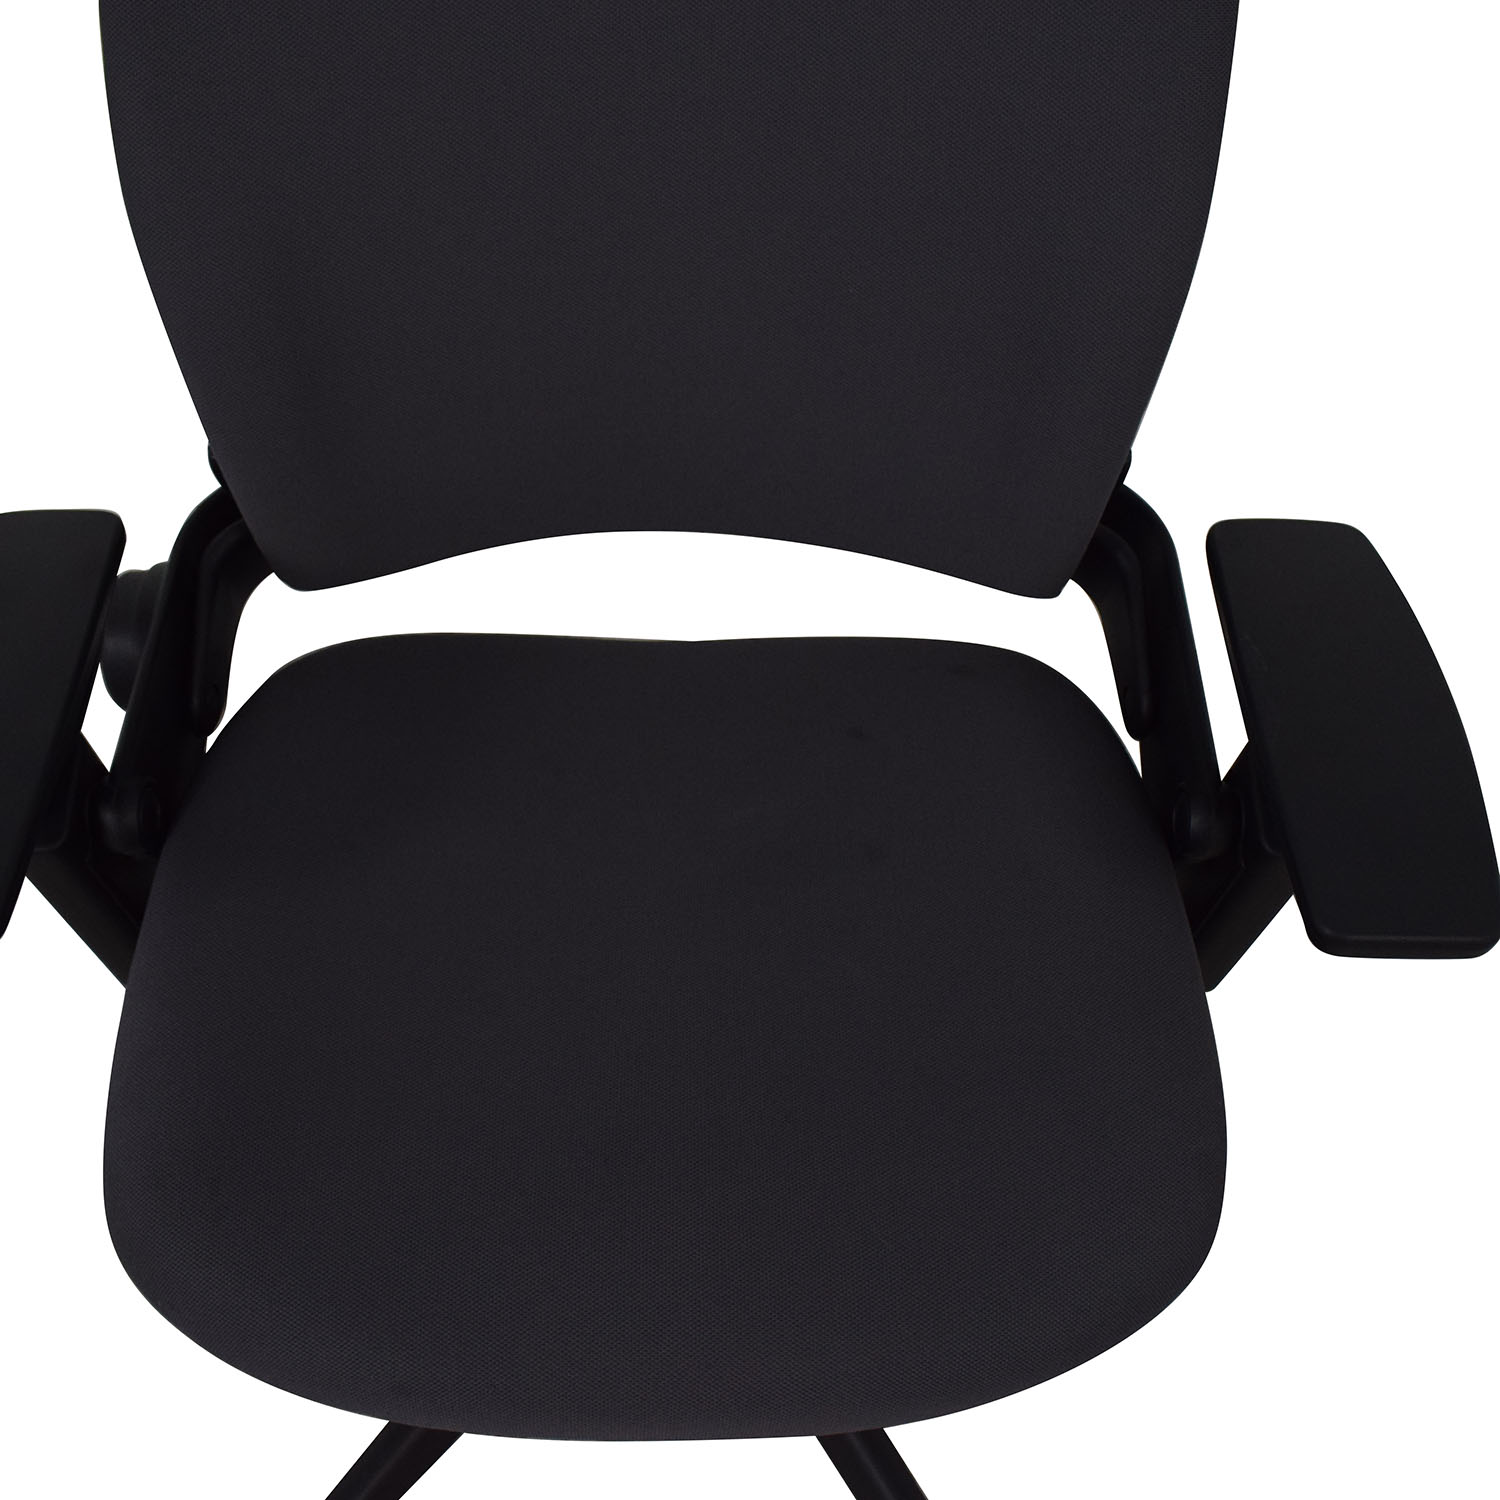 Steelcase Steelcase Leap V2 Office Chair dimensions